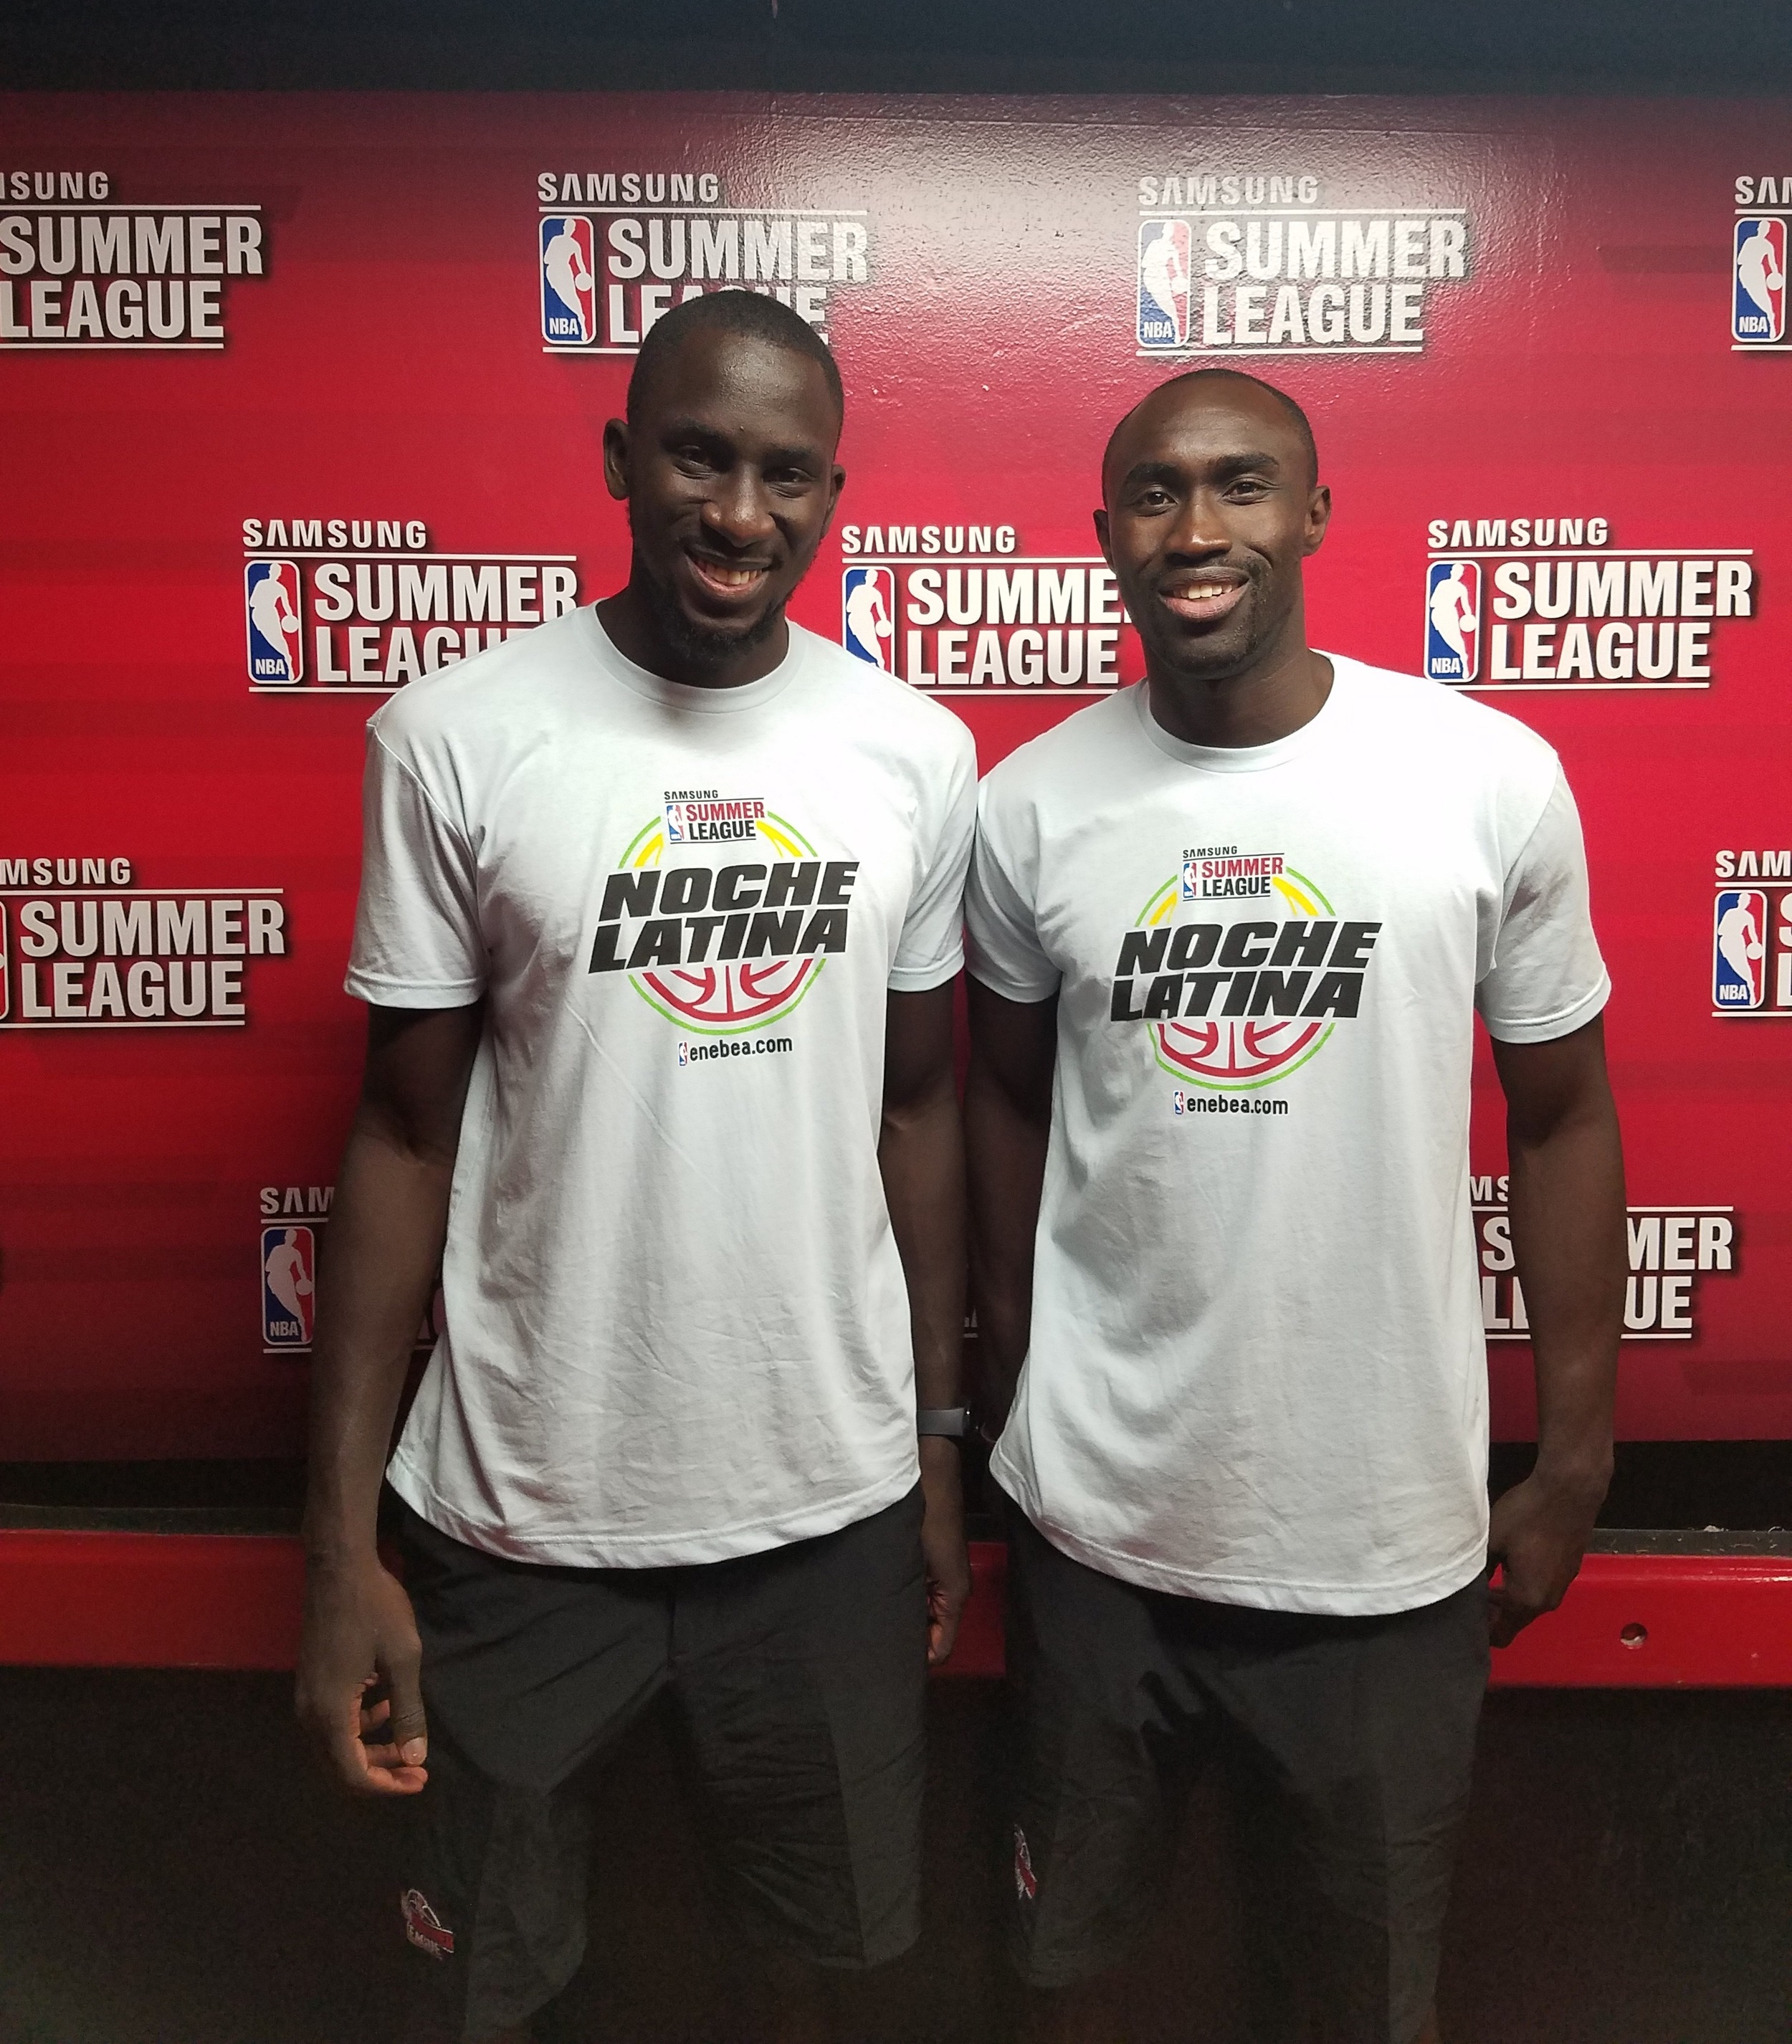 Serigne Mboup (Left) and Remy Ndiaye (Right) at the NBA Summer League in Las Vegas